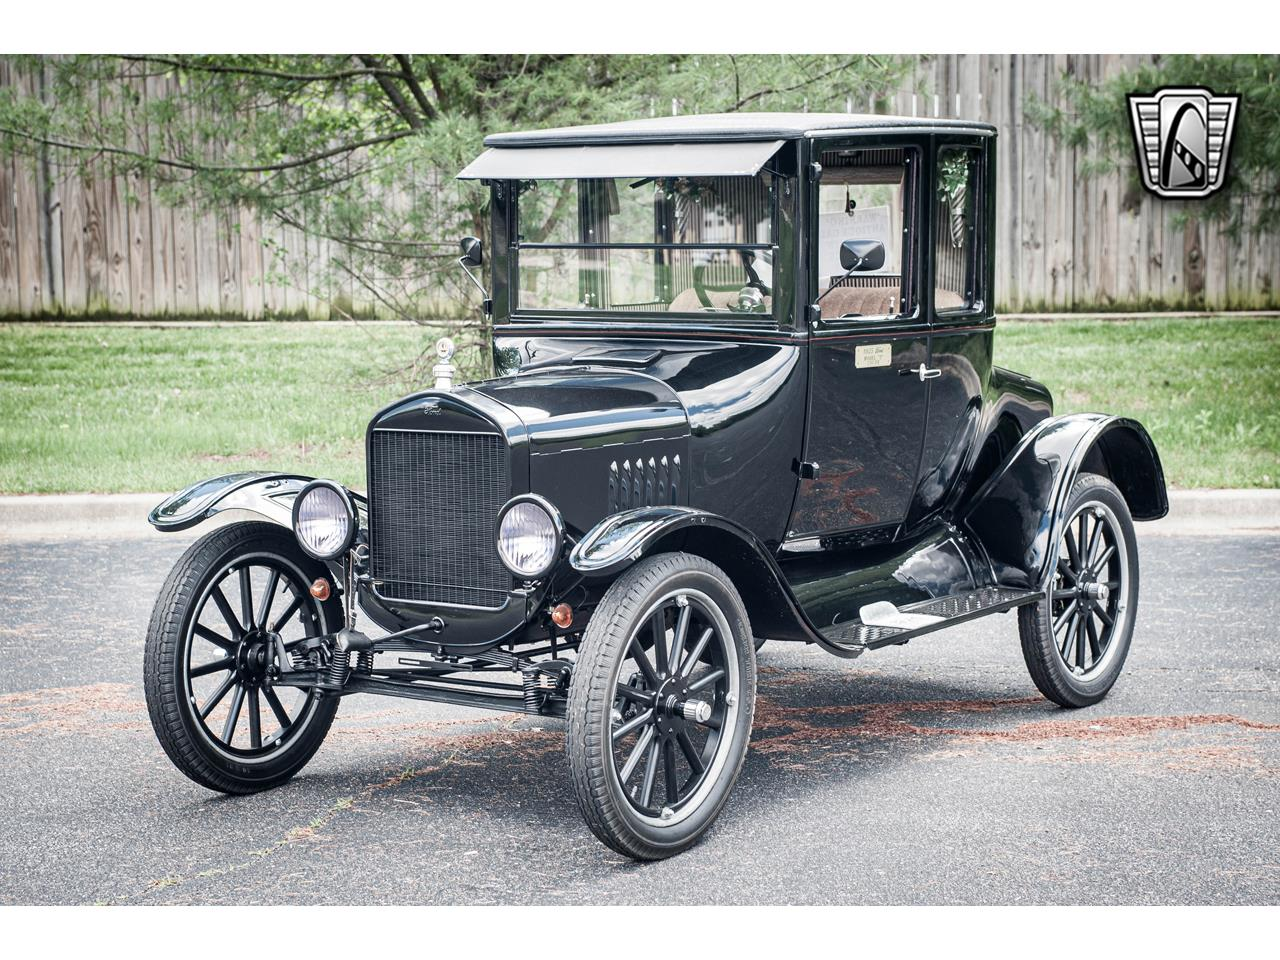 Large Picture of '25 Ford Model T located in O'Fallon Illinois - $18,000.00 - QB96